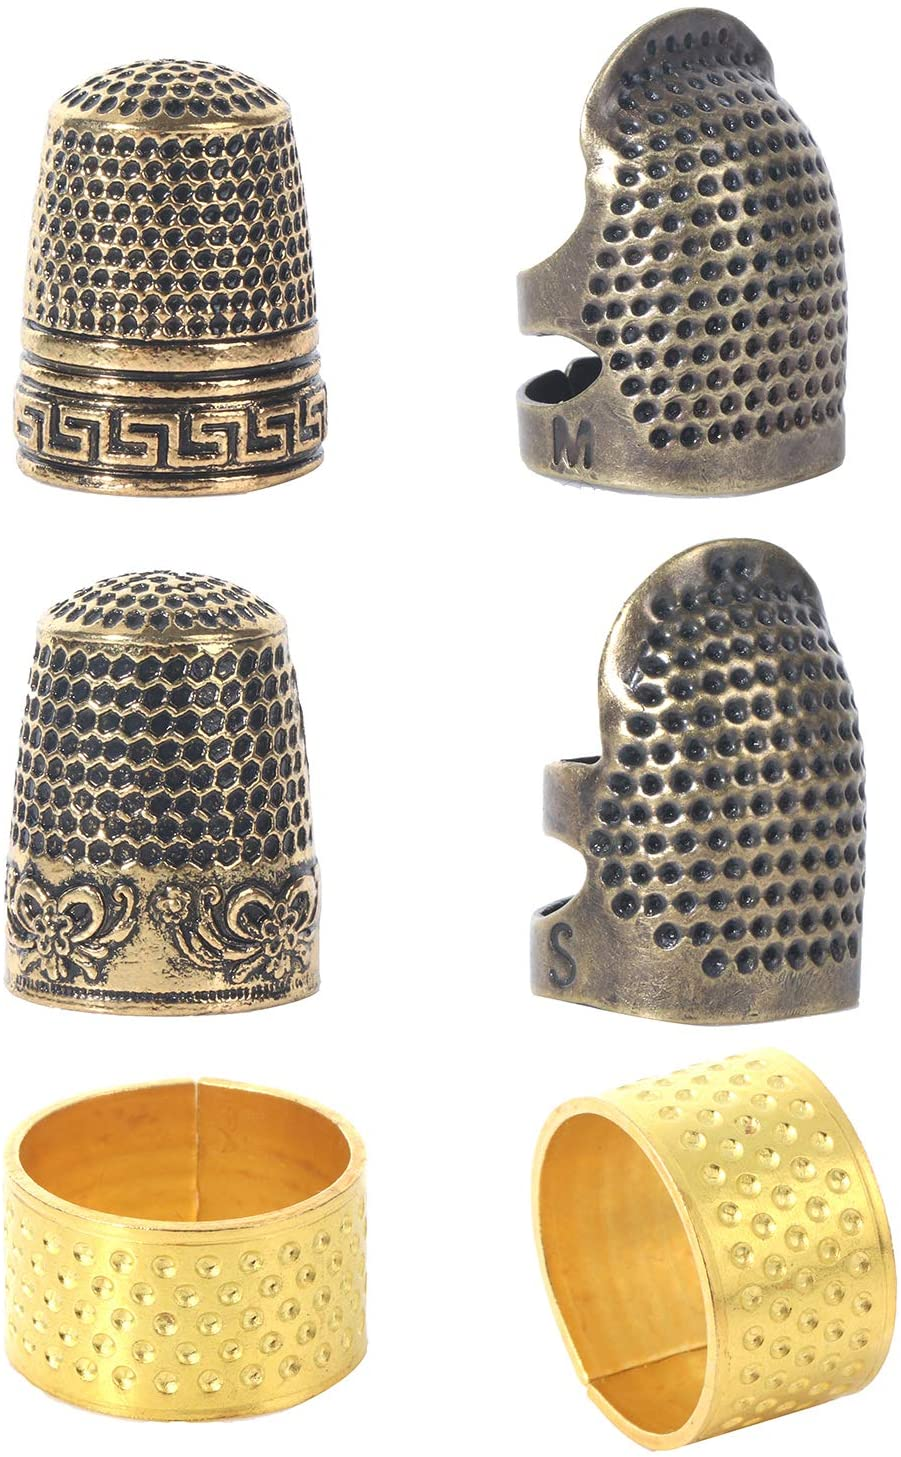 6 Pieces Sewing Thimble Finger Protector Metal Copper Sewing Thimble Adjustable Finger Shield Protector Ring Fingertip Sewing Thimble Sewing Accessories for DIY Sewing Quilting Craft Sewing Tools